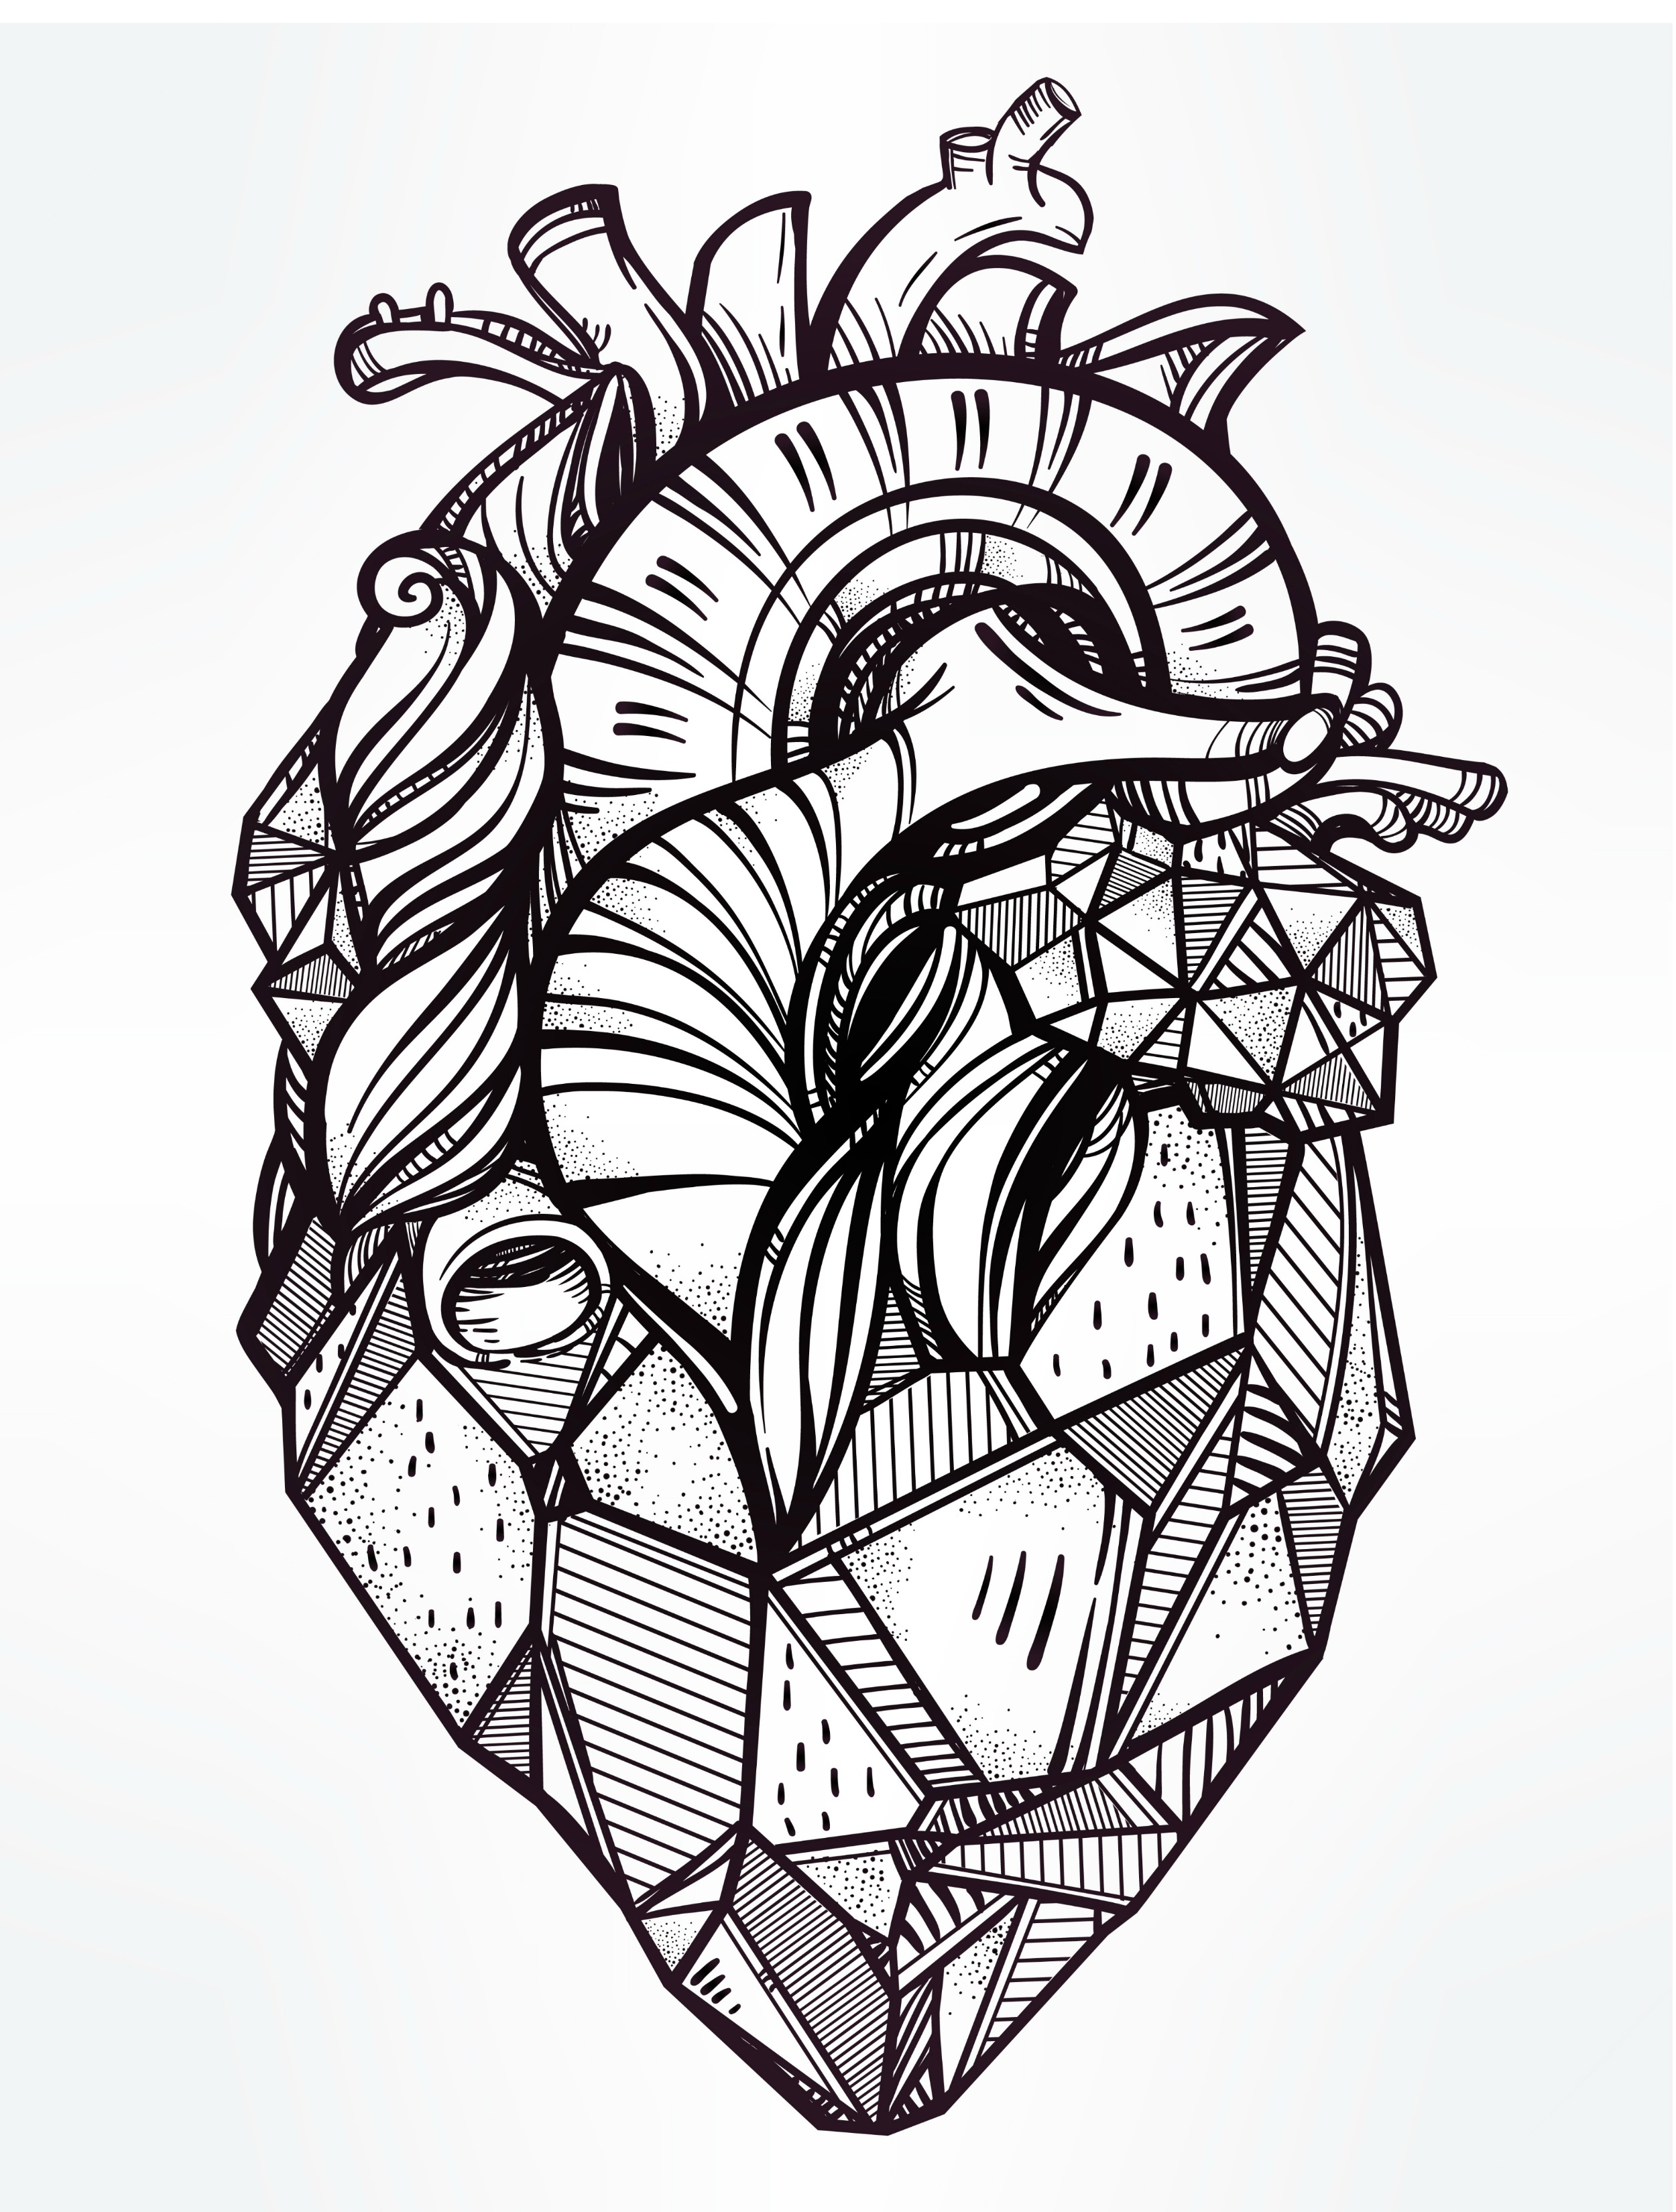 Free Coloring Pages Hearts Free Coloring Pages For Adults Hearts